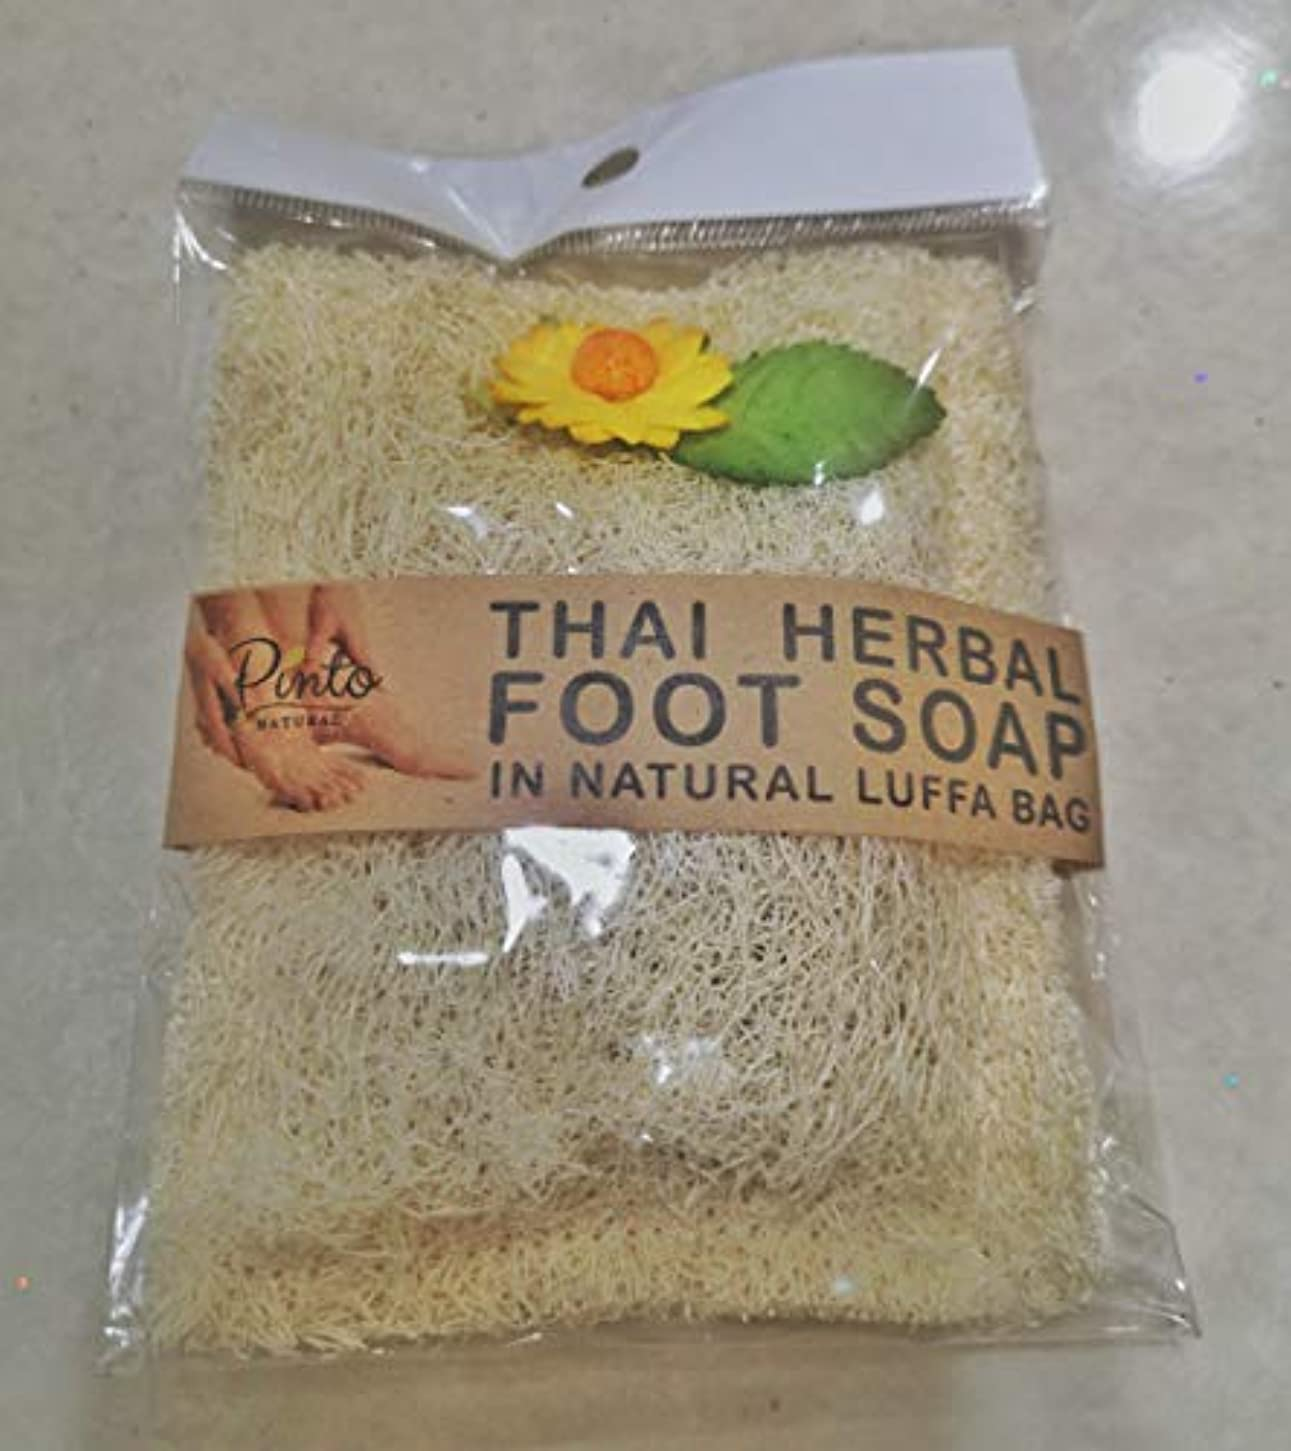 ビスケット登録するうつ1 PC THAI HERBAL FOOT SOAP WITH NATURAL LUFFA BAG WITH LEMONGRASS SMELL BODY SCRUBB WITH NATURAL FREE SHIPPING